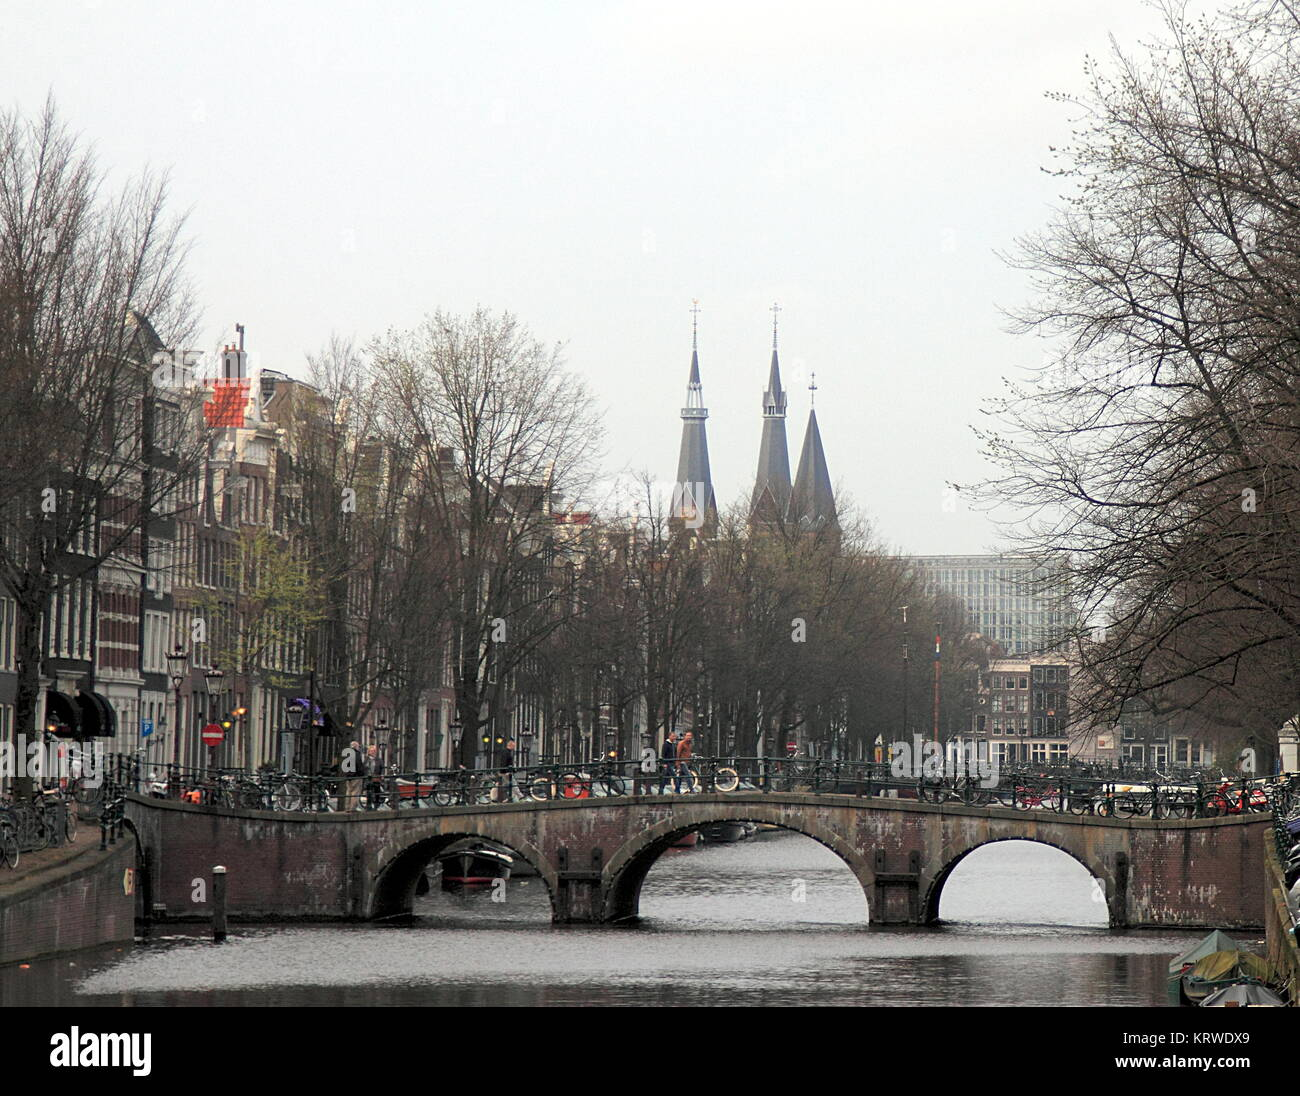 Bridges and buildings of canal ring, Amsterdam, Netherlands, at early spring. - Stock Image